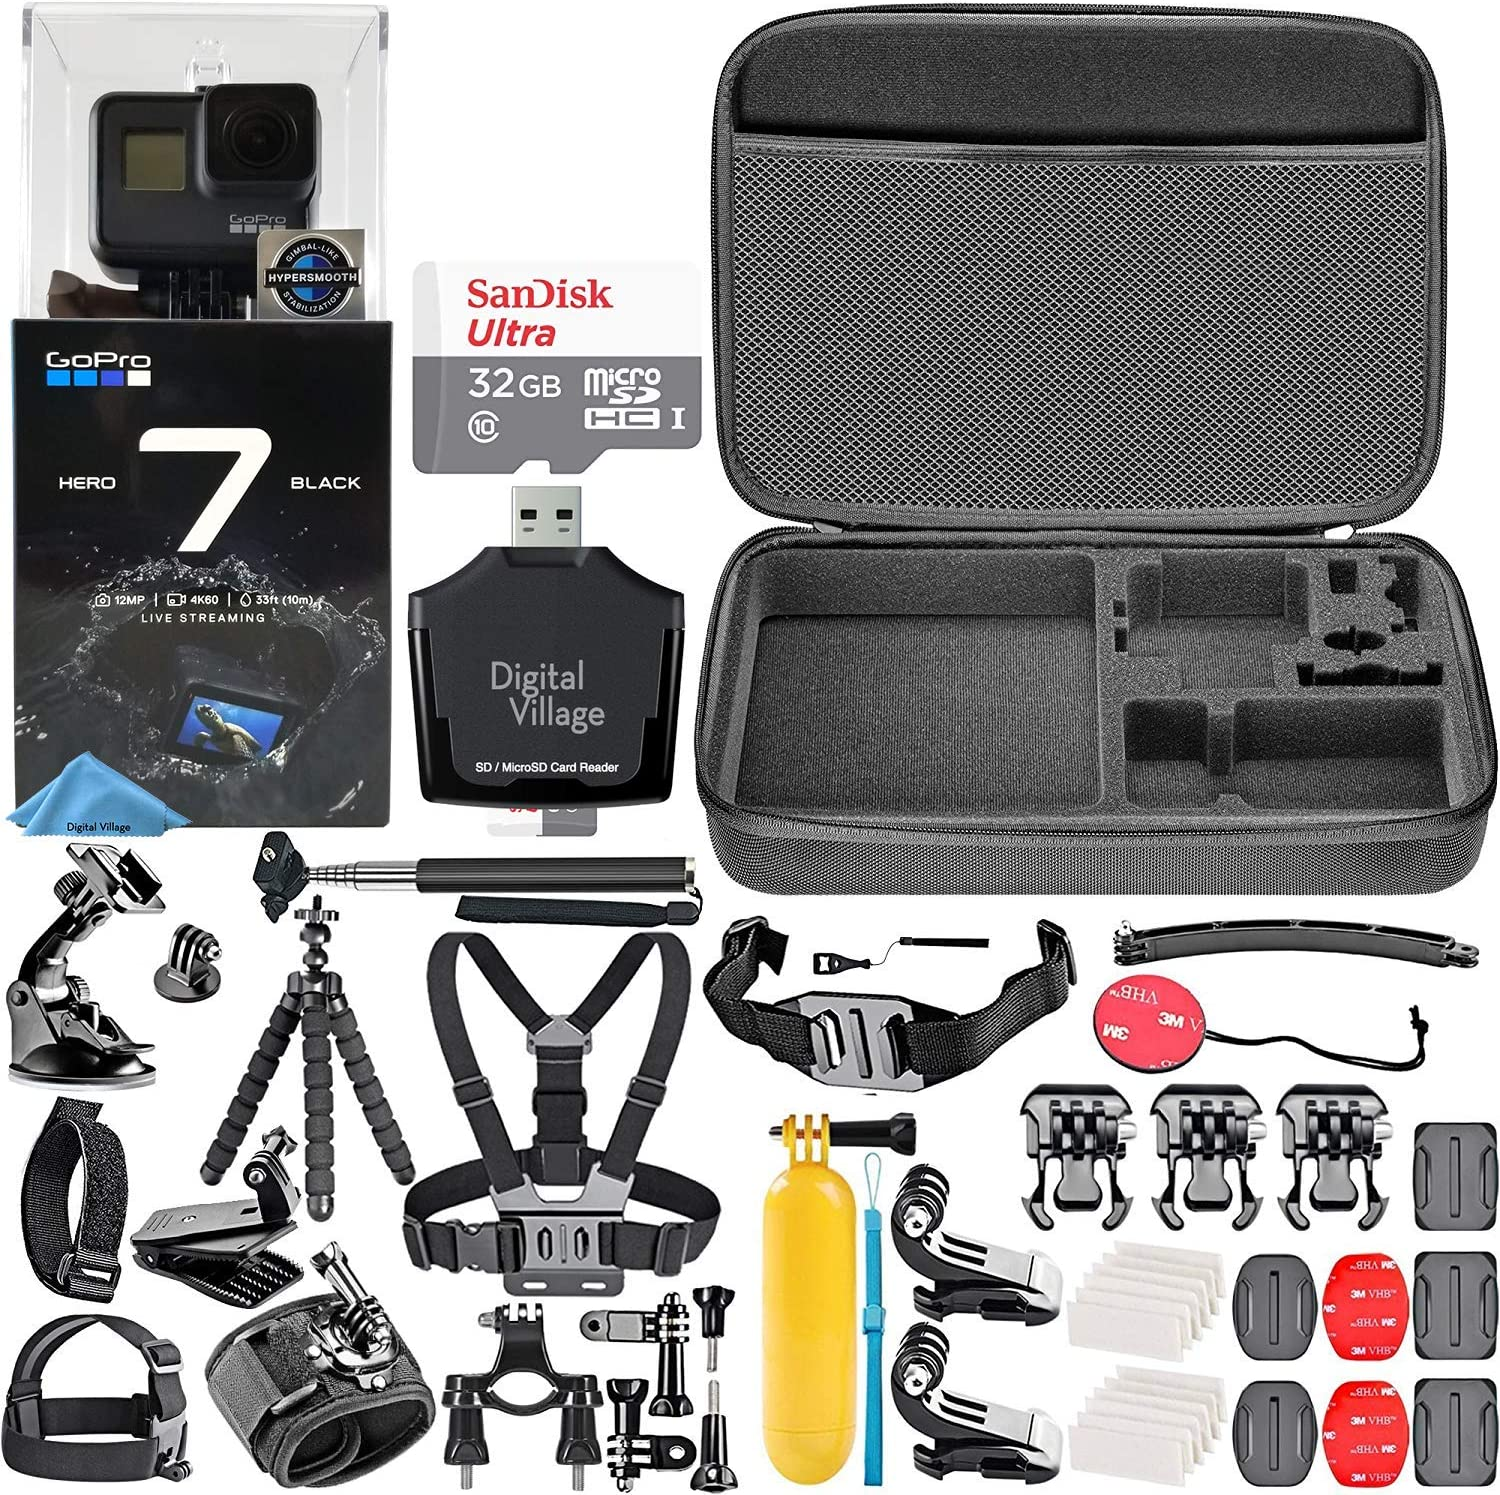 GoPro HERO7 Black + 32GB Memory Card + Hard Case + Card Reader + Chest Strap Mount + Head Strap Mount + Flexible Tripod + Extendable Monopod + ...